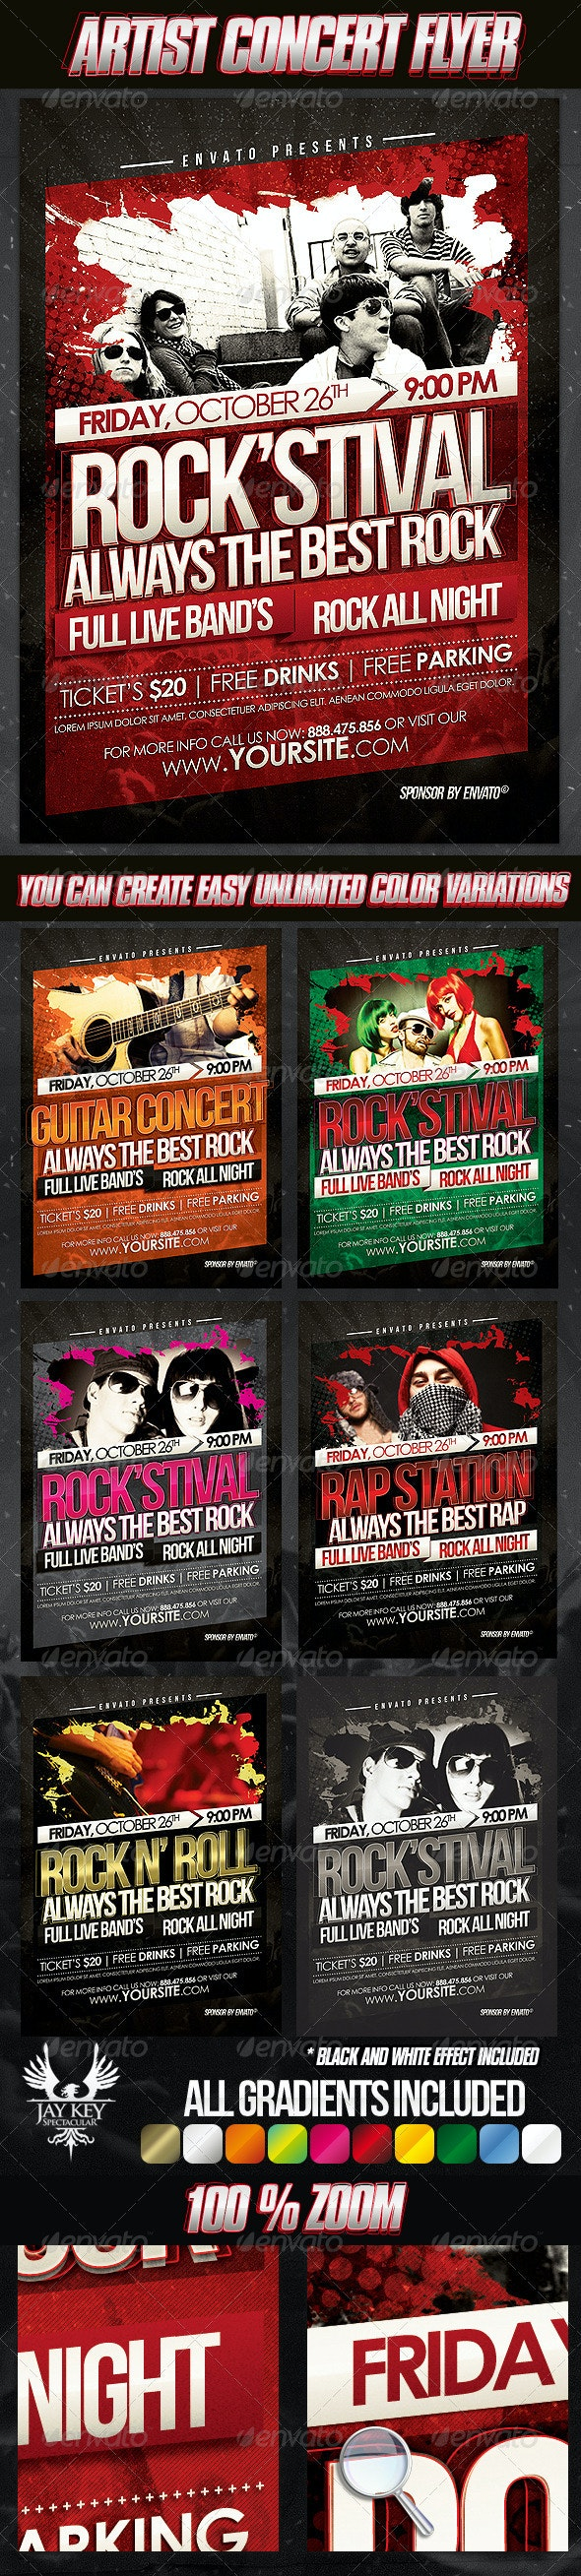 Artist Concert Flyer Template - Concerts Events